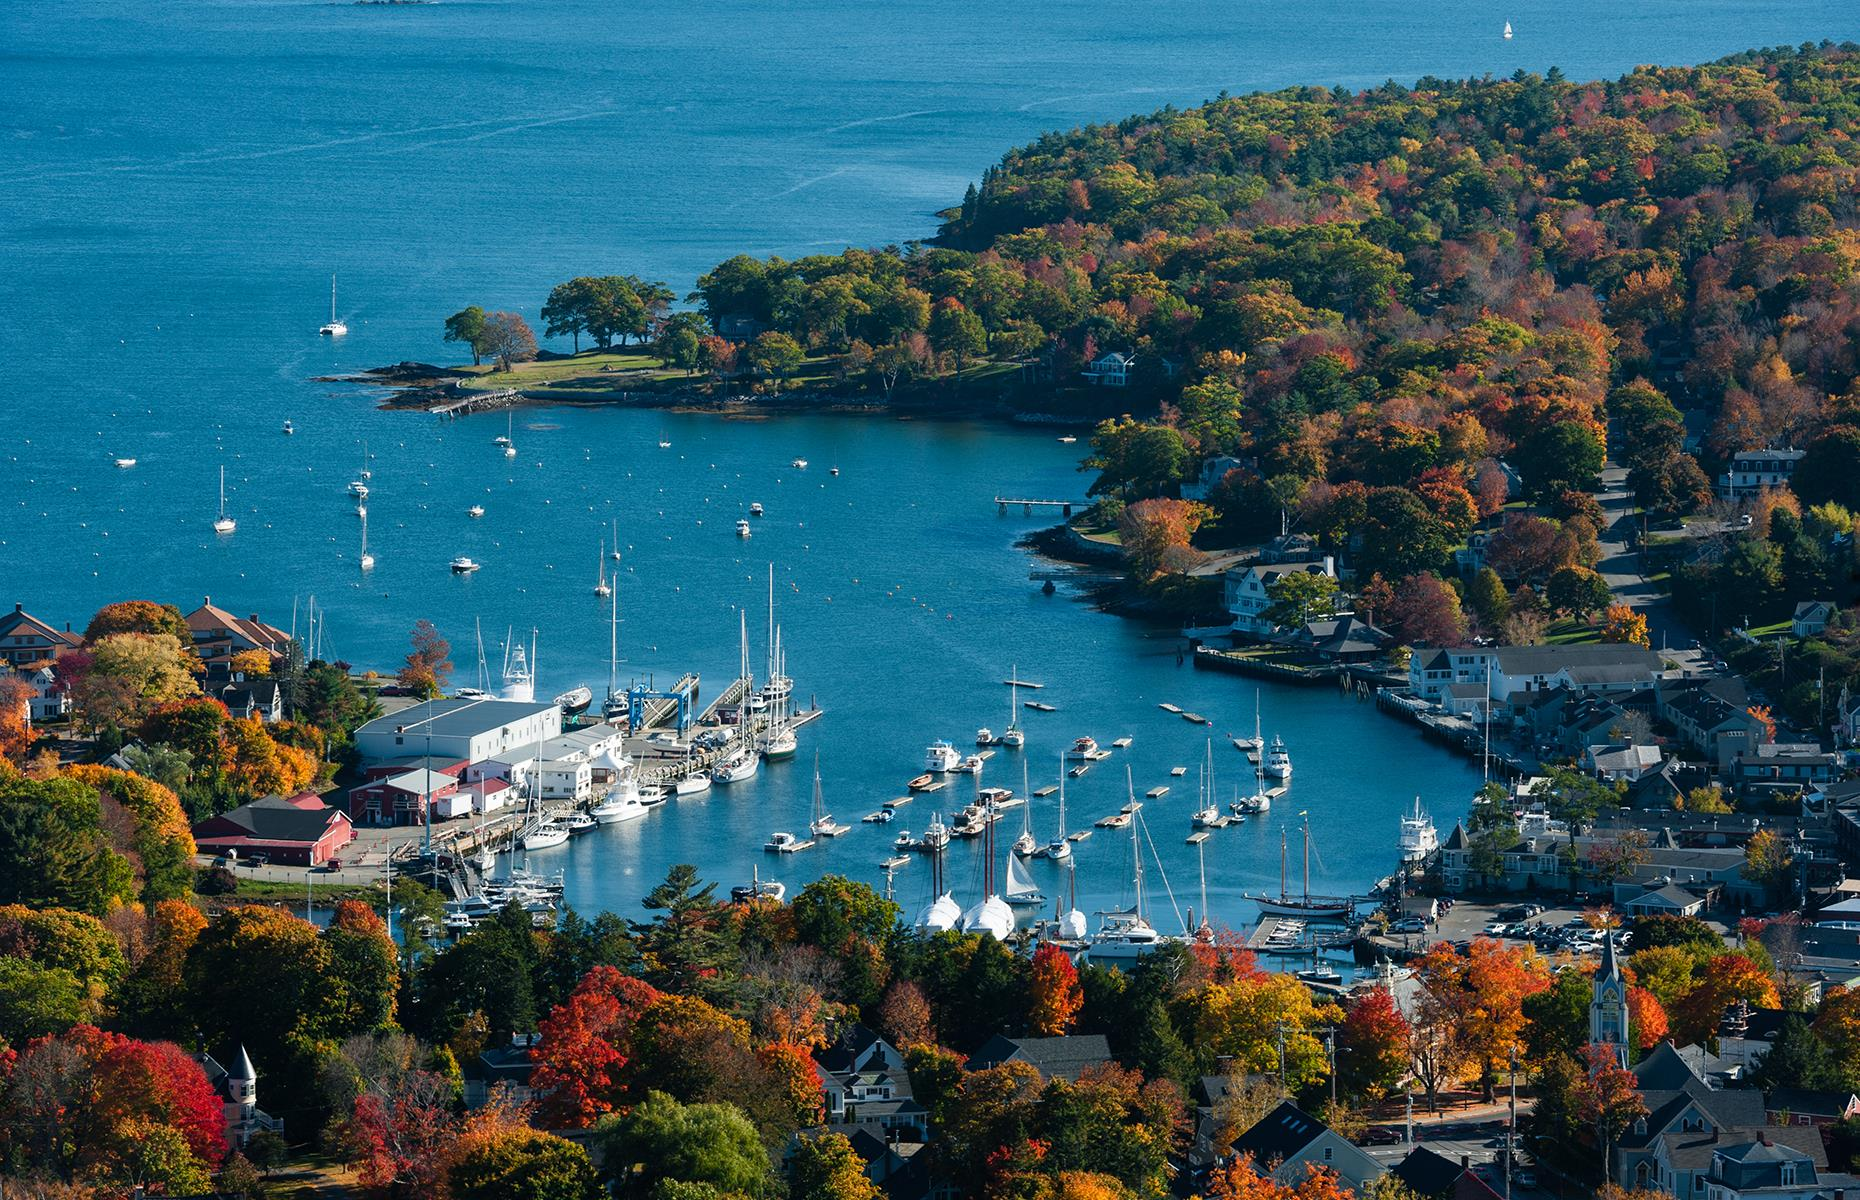 Slide 9 of 51: Nicknamed the 'jewel of the Maine coast', Camden is a quintessential seaside town with a charming harbor, an old lighthouse, jagged rock bays and sunset cruises. The nearby Mount Battie showcases gorgeous views over the town, the bay and the surrounding forests.